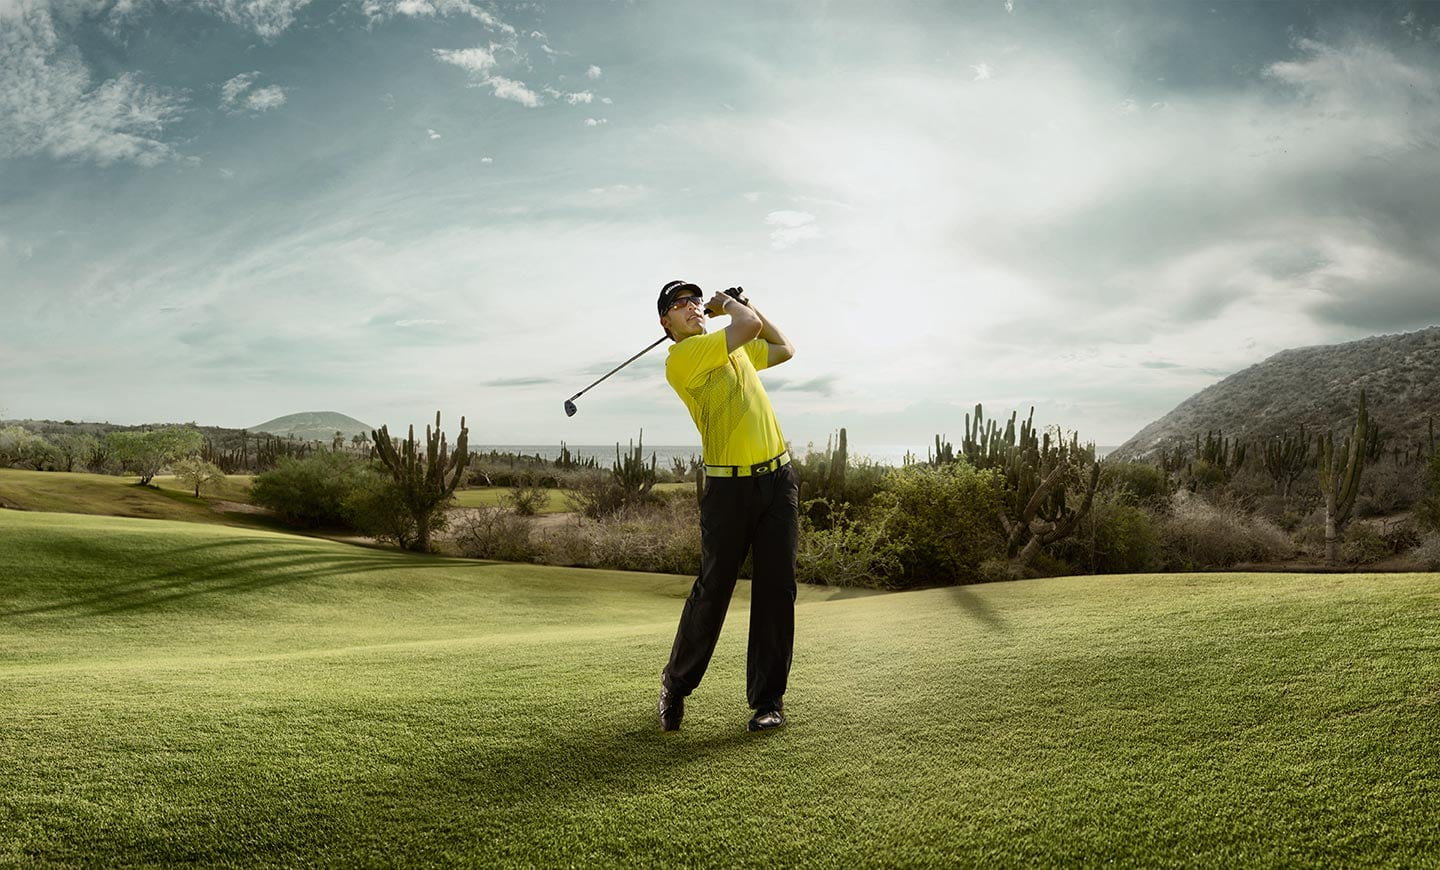 Rod-Mclean-Active-Lifestyle-male-golfer-Ricky-Barnes-swinging-iron-on-the-fairway